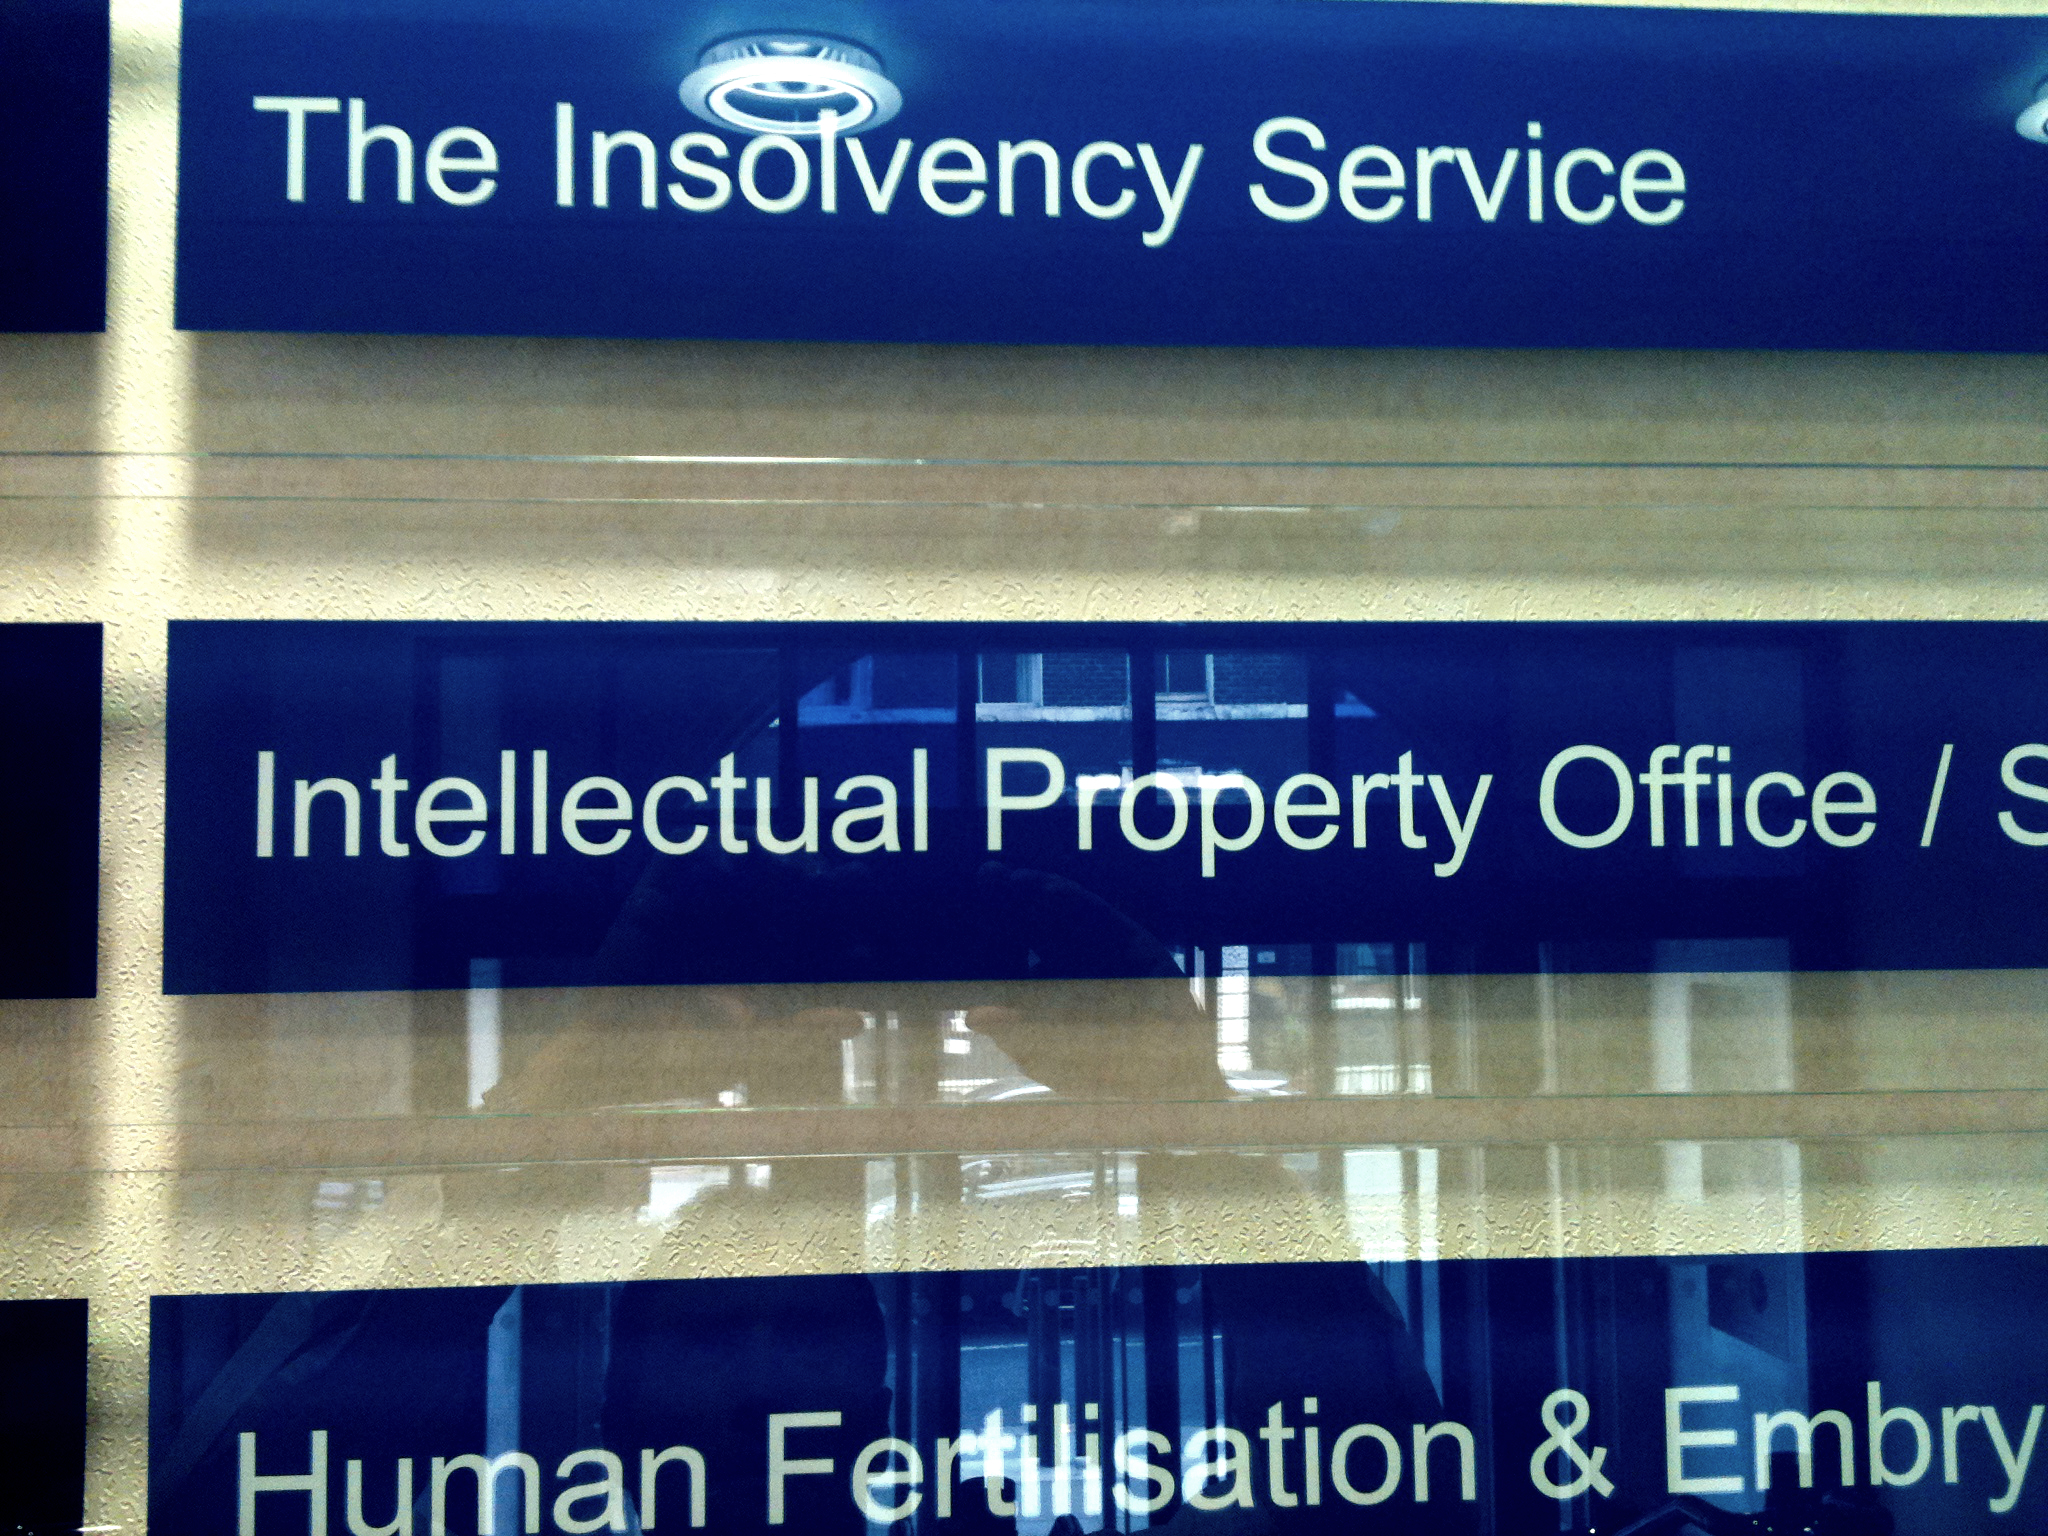 Door Signs IPO Intellectula Property Office sign by E Signs ® E Signs is the registered trade mark of Lewis Critchley www.e-signs.co.uk